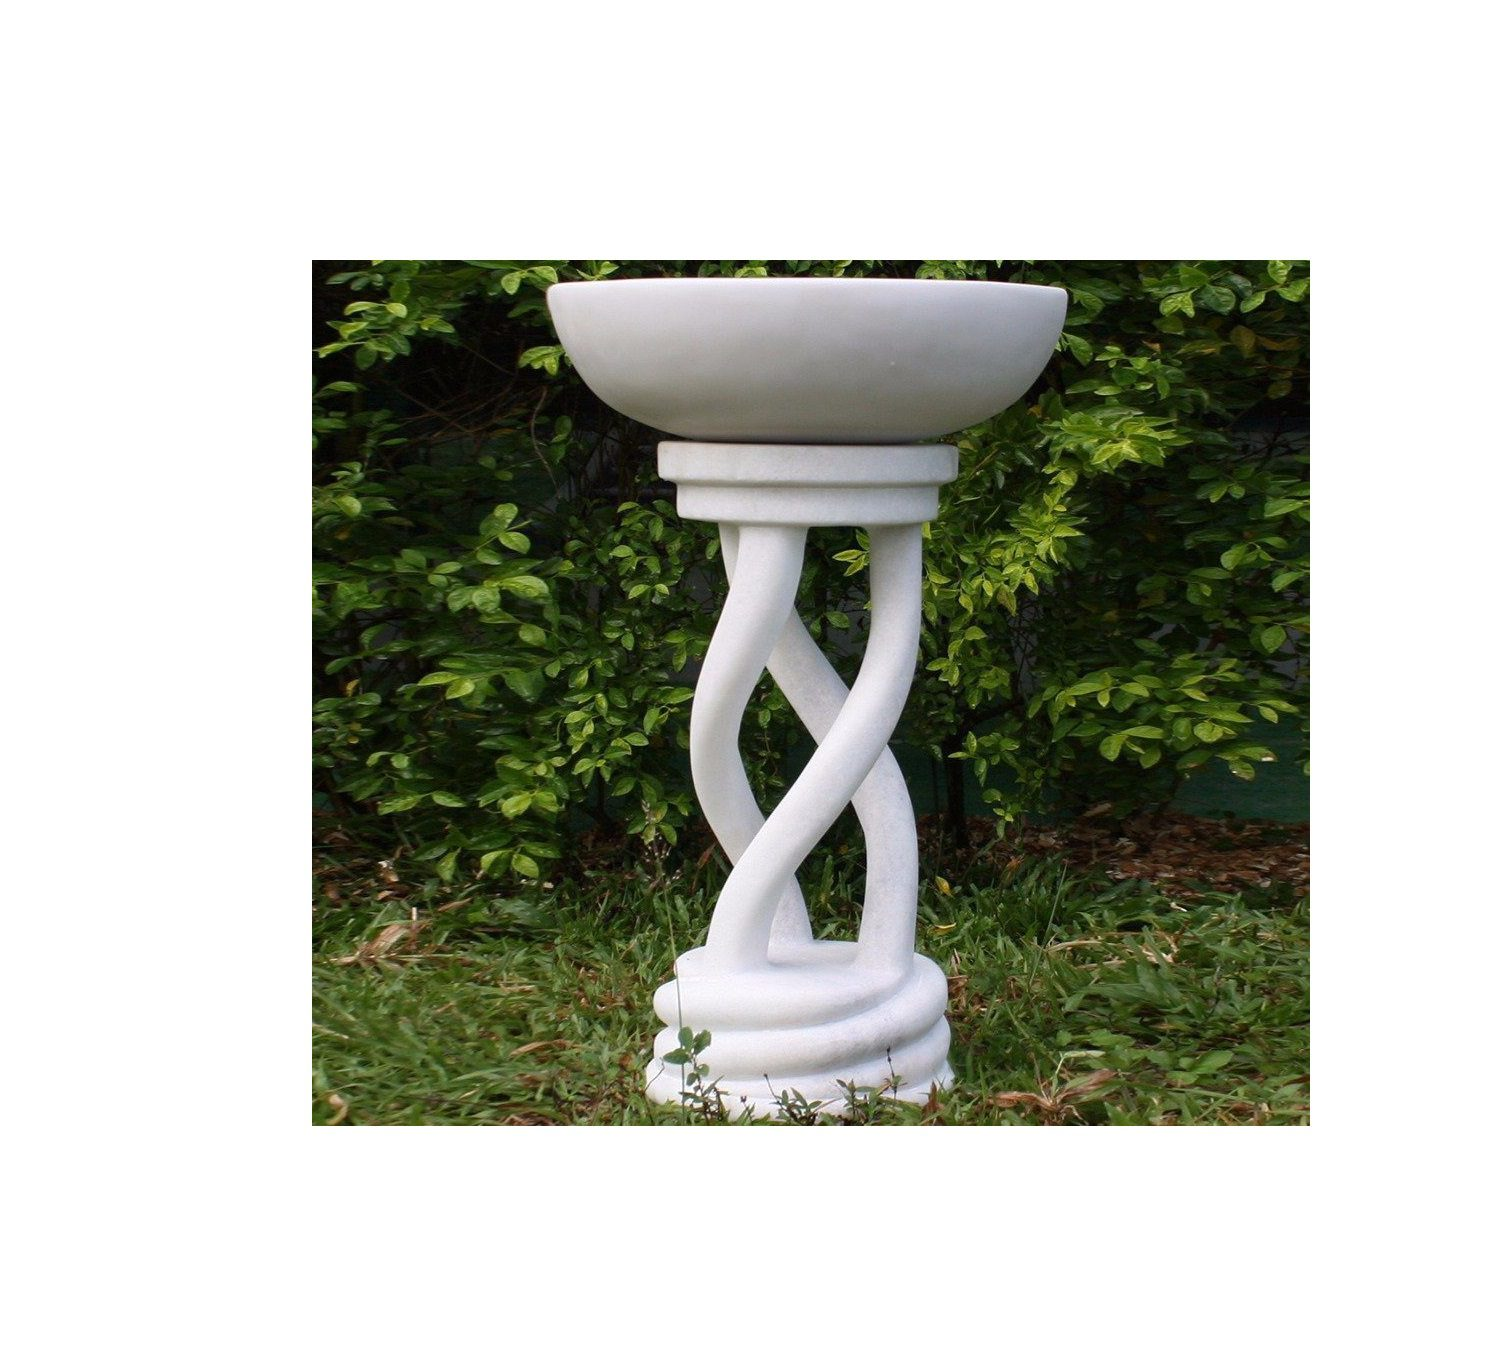 Spiral White Bird Bath 6D9Df00D11186C25A99E0909D73853E3 Original